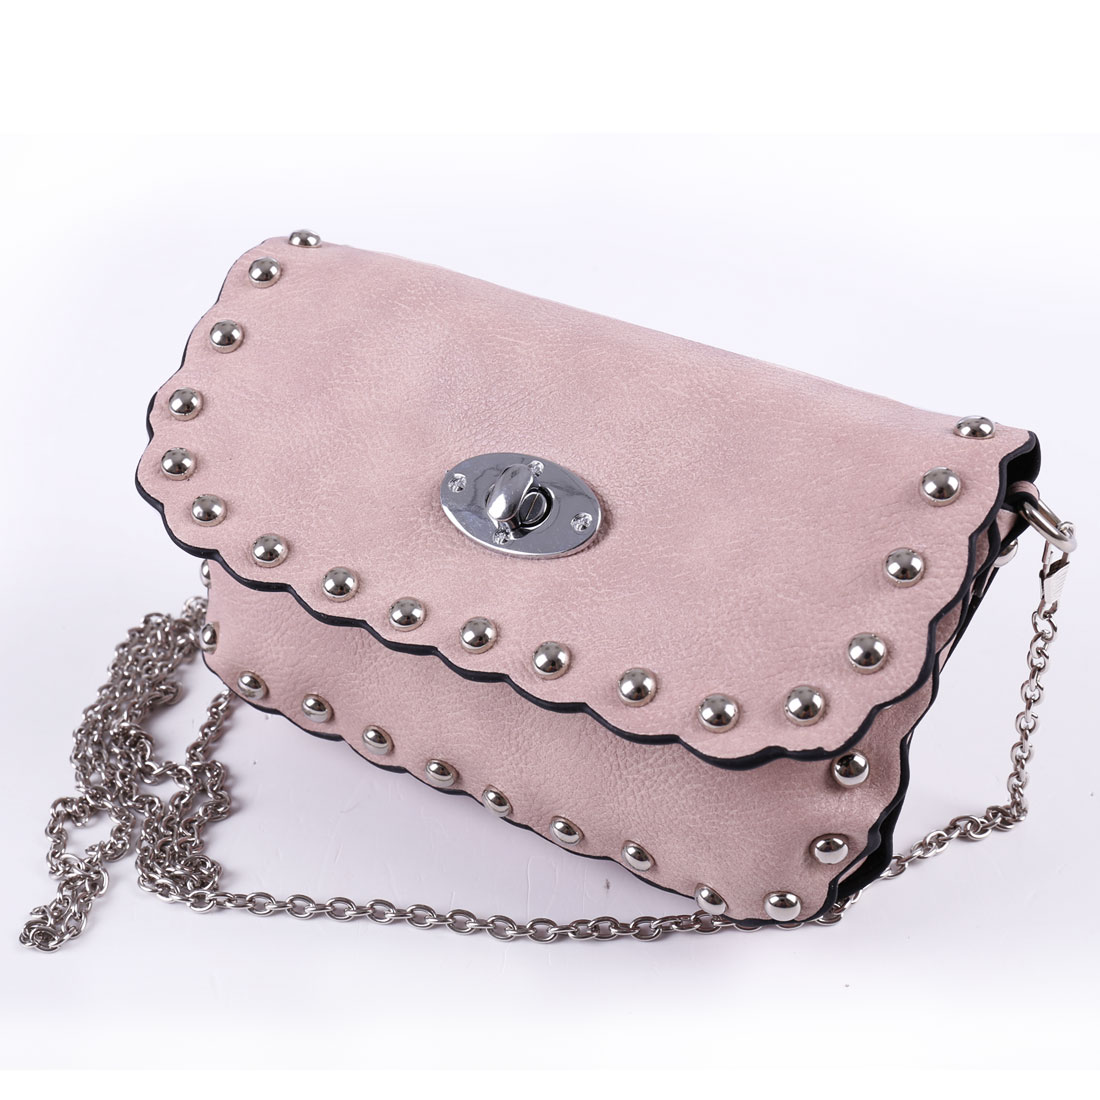 Stud Decor Faux Leather Metal Chain Turn Lock Clasp Shoulder Bag Pink for Woman